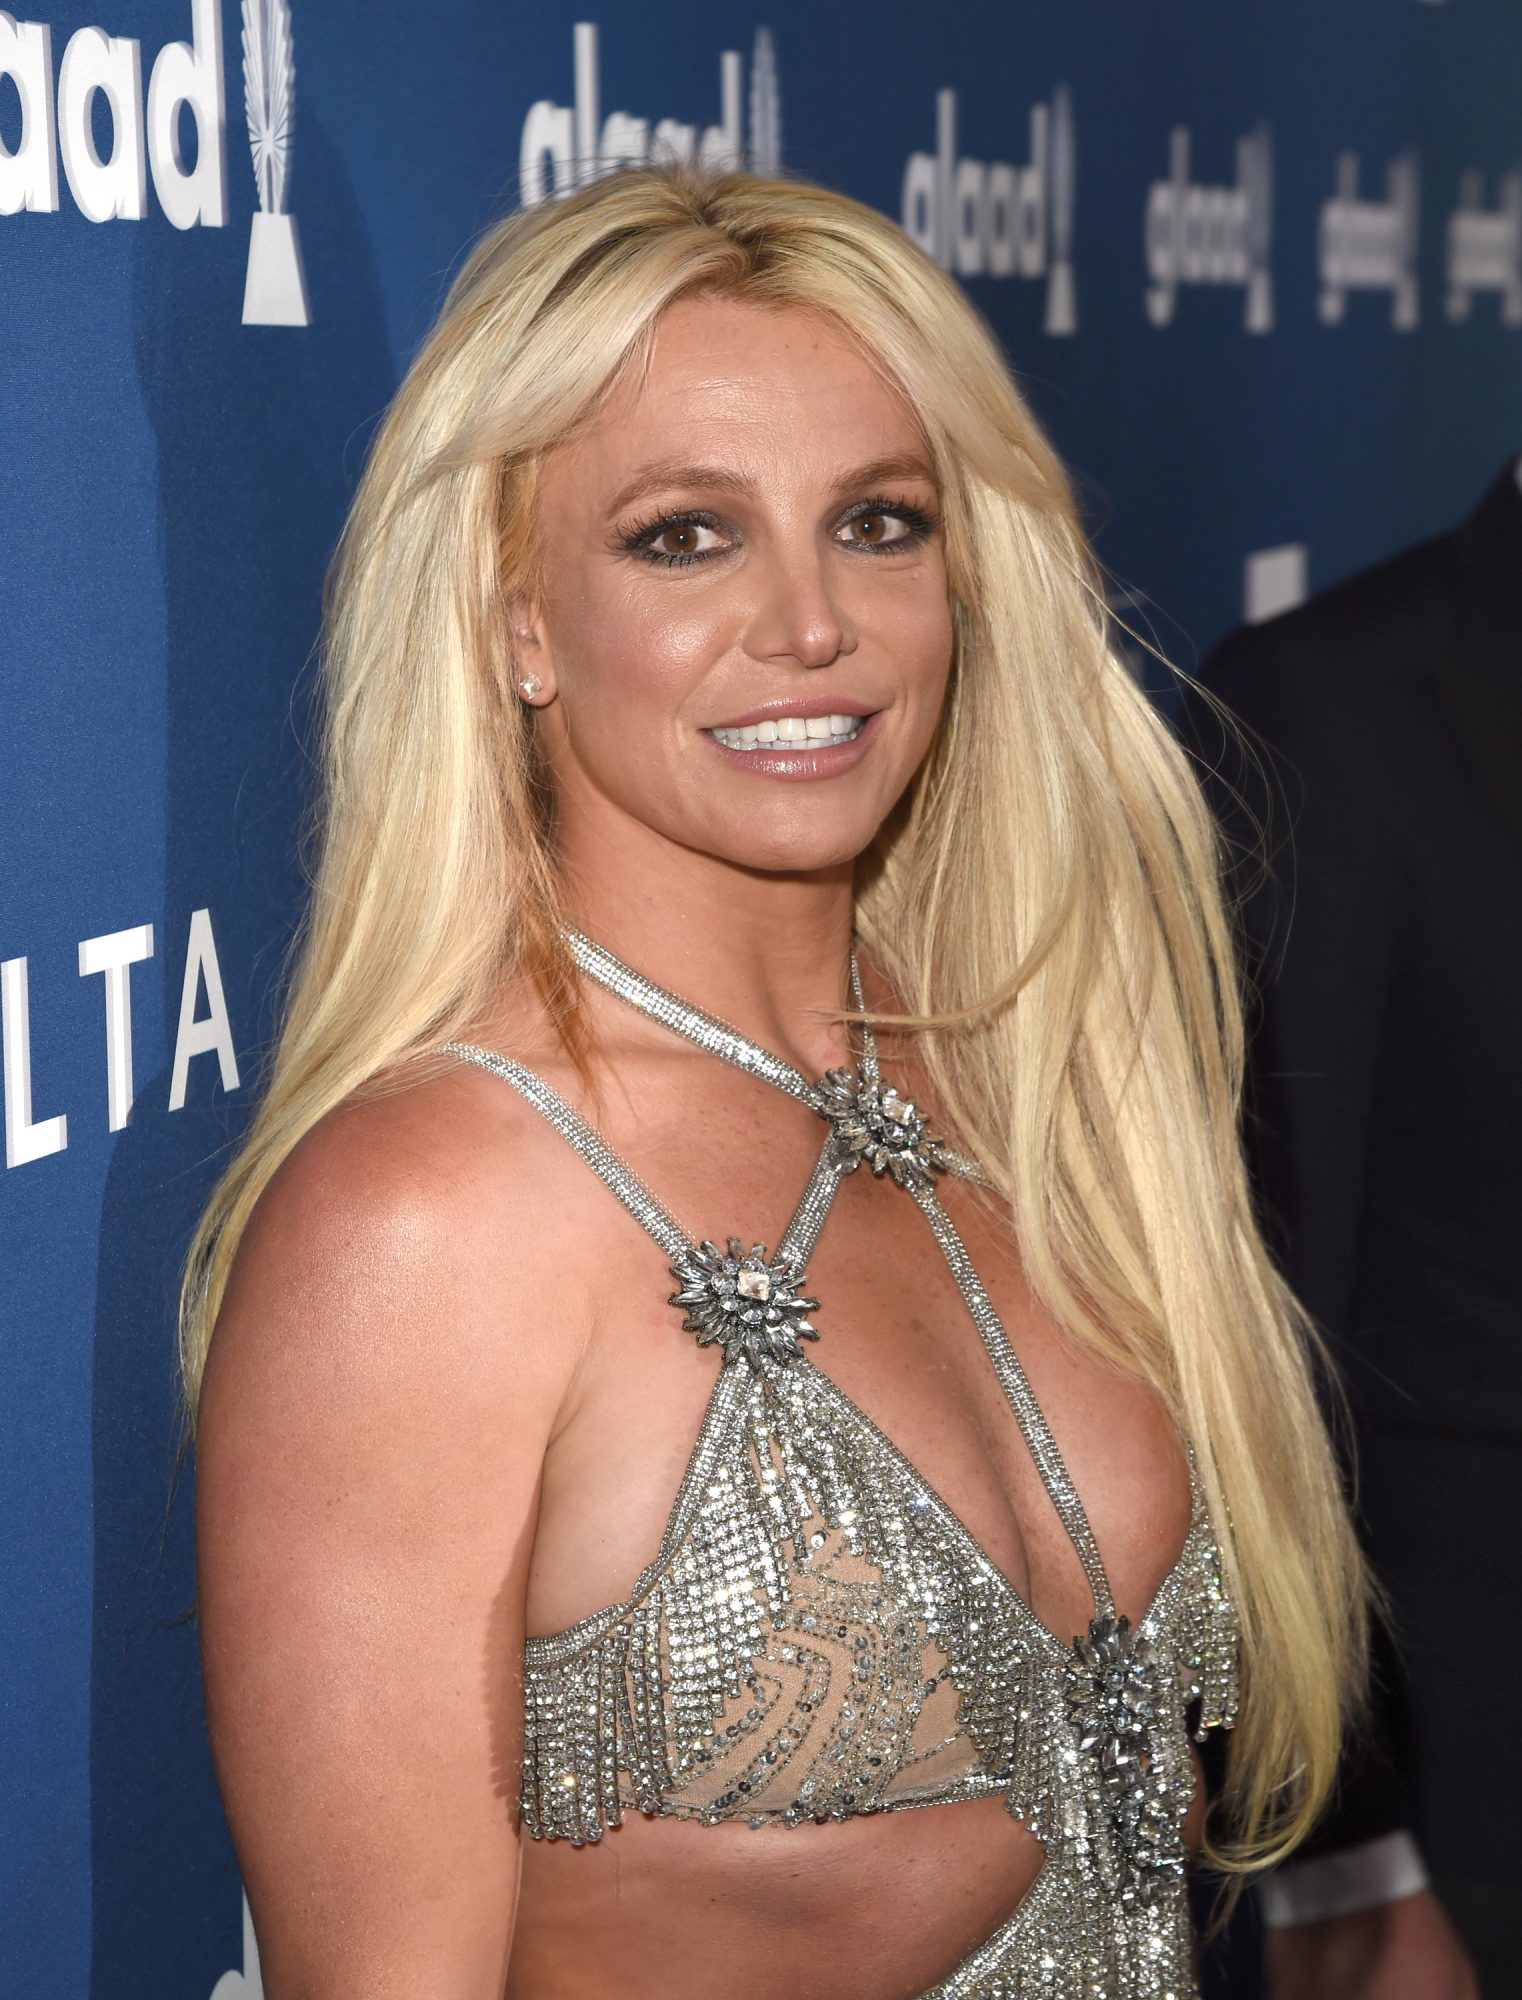 Britney Spears -29th Annual GLAAD Media Awards Los Angeles - Red Carpet